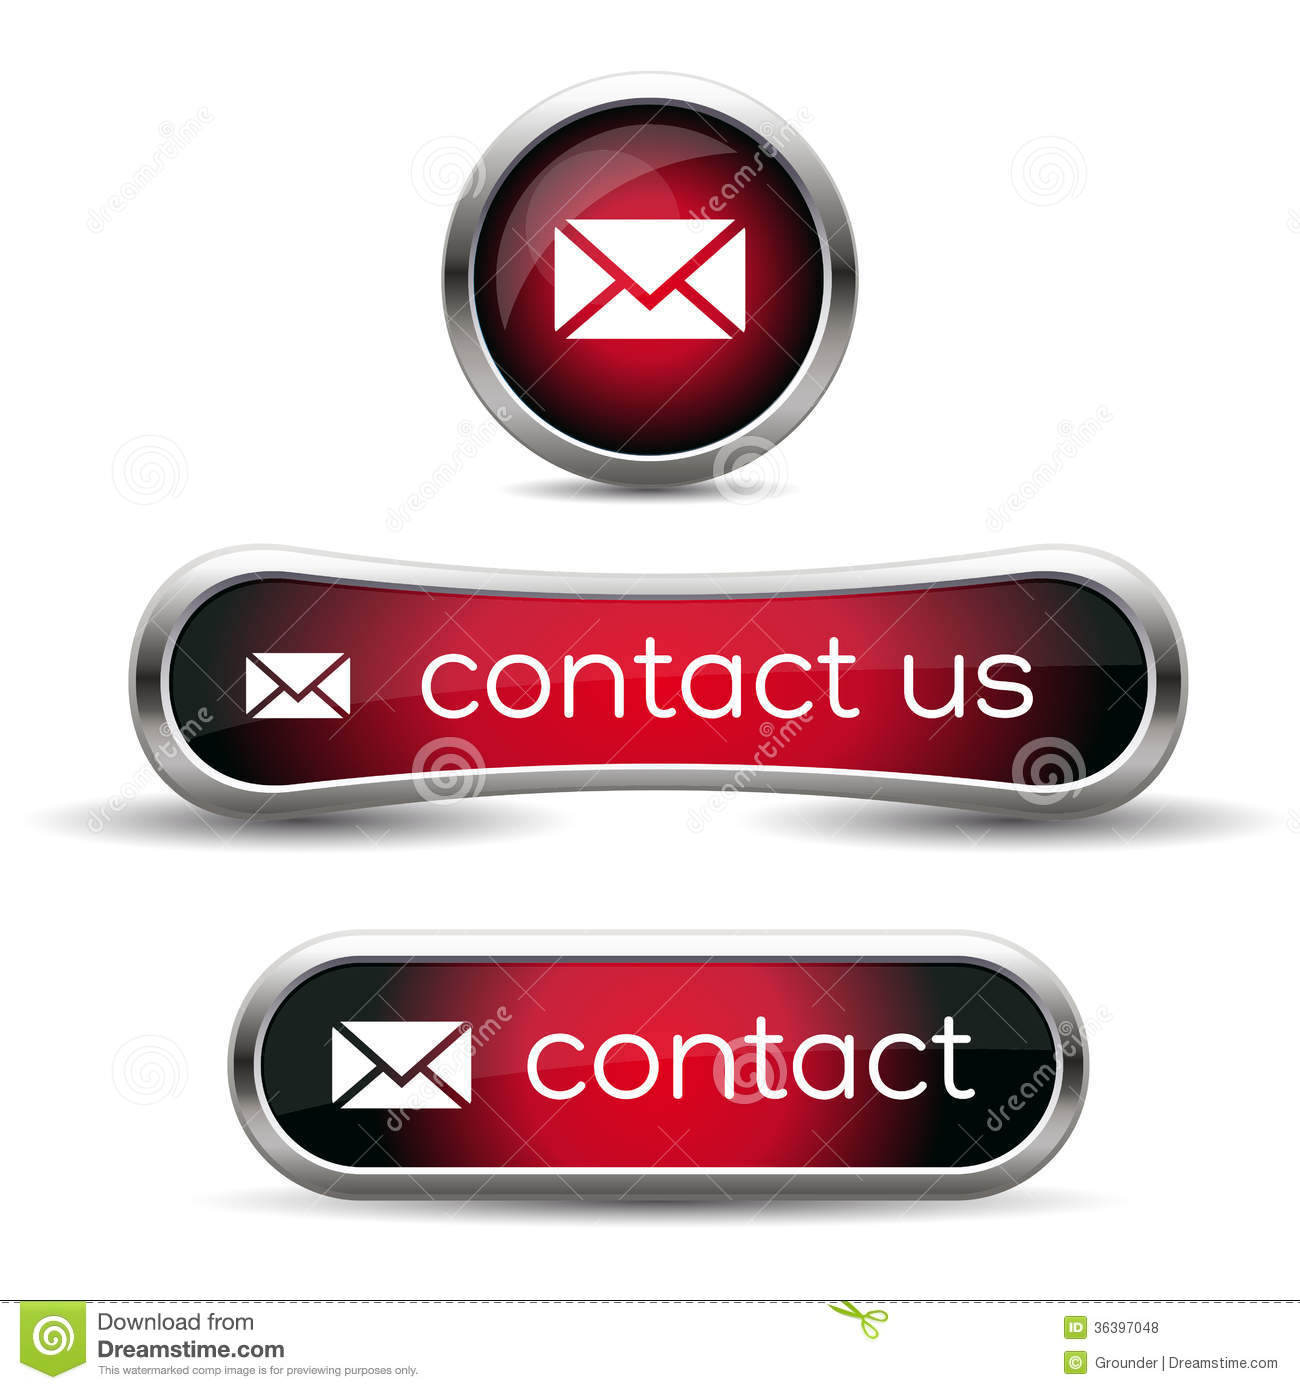 Contact Us Red >> Contact us icon stock vector. Illustration of email